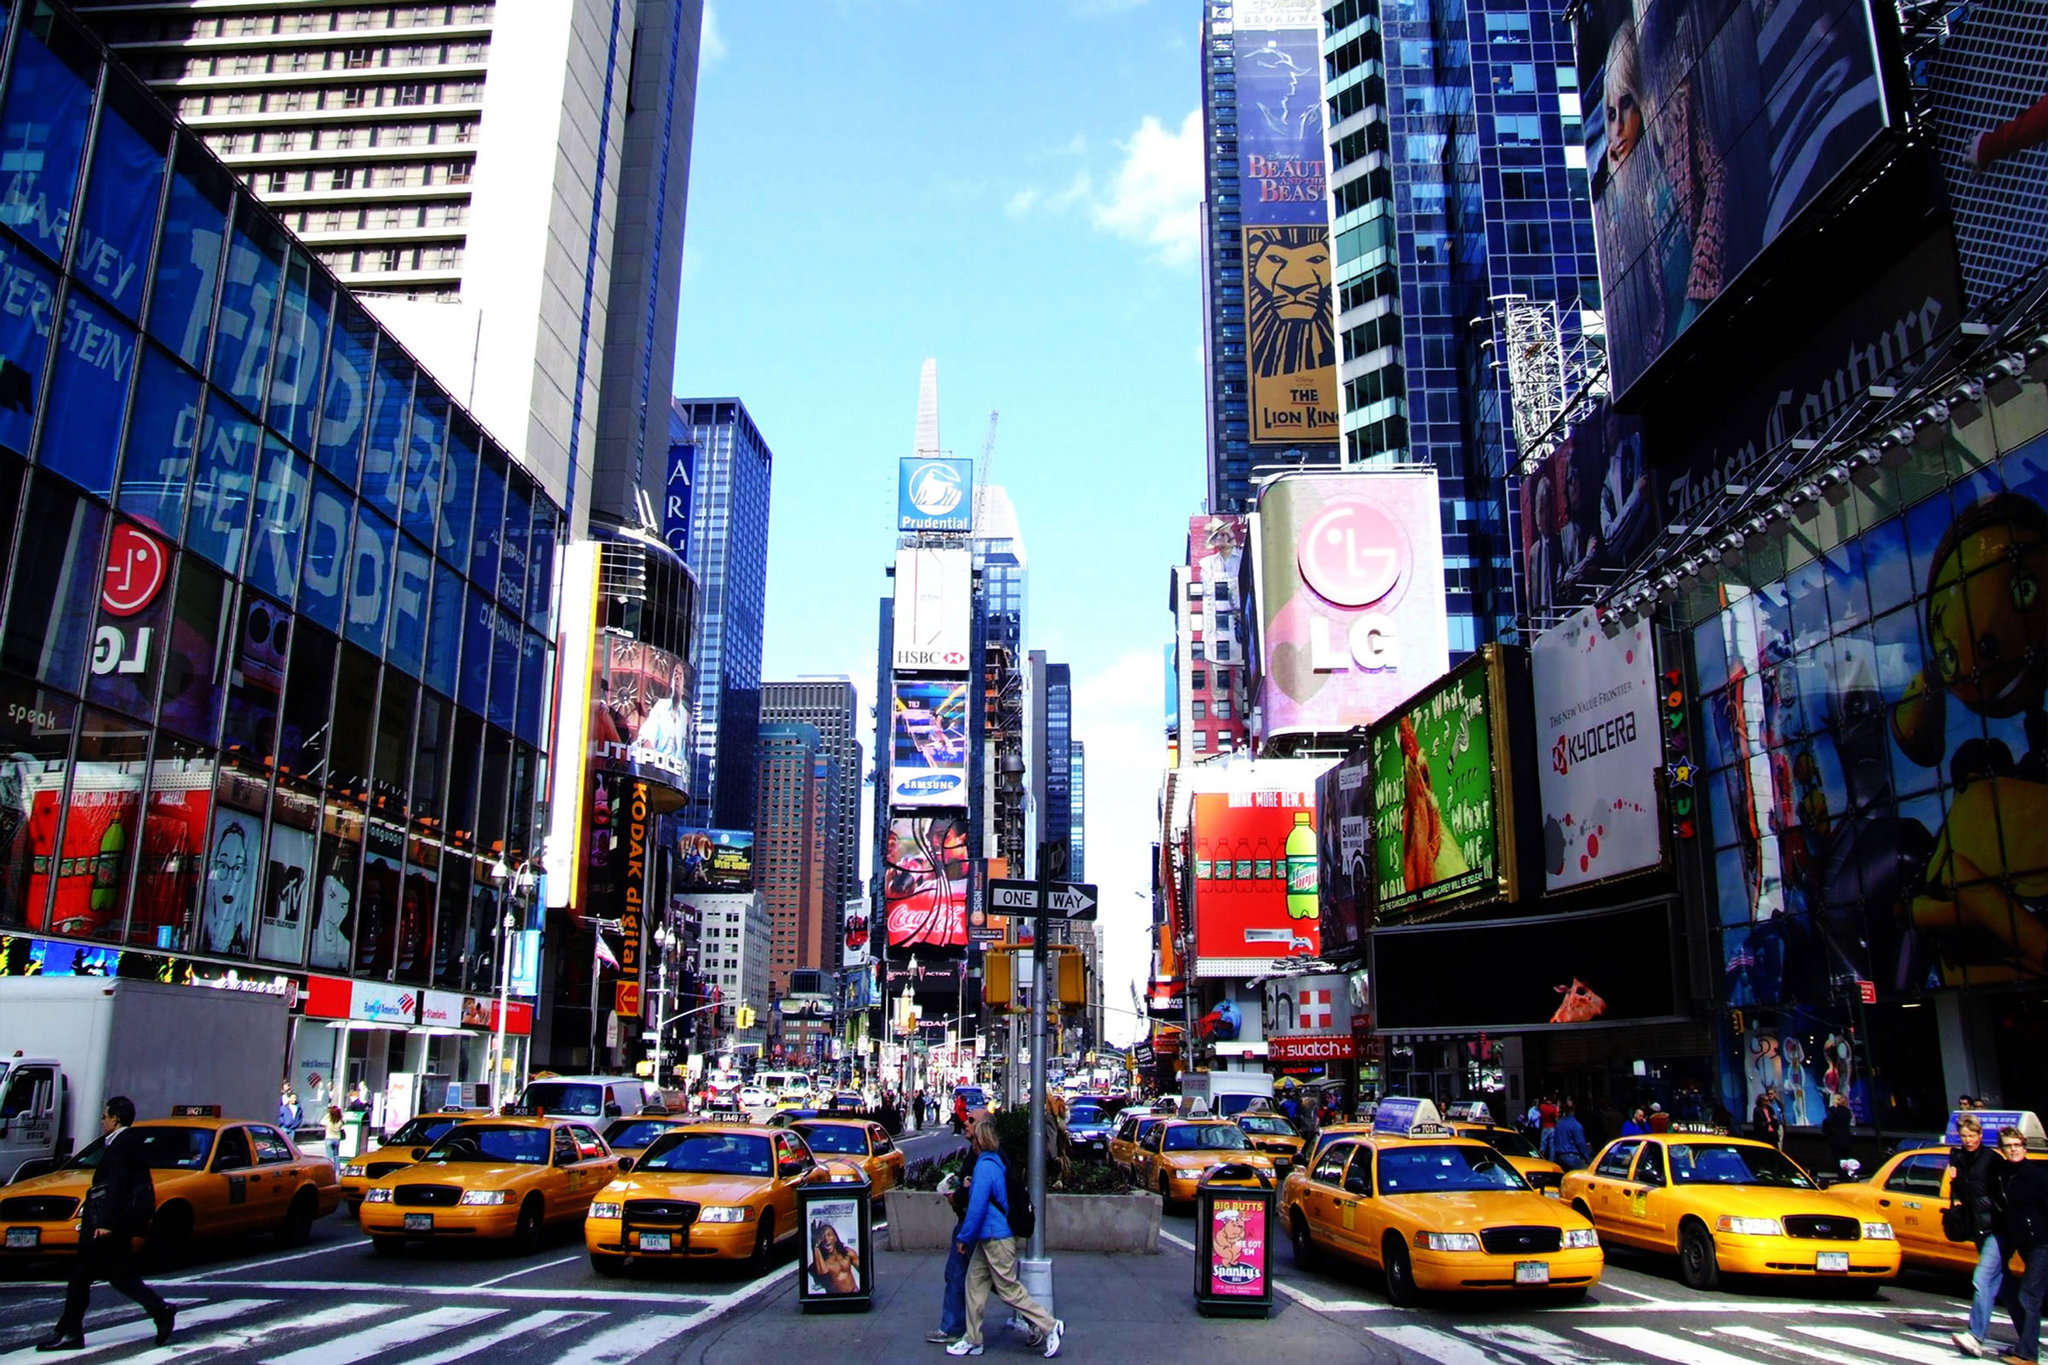 New York obmenvisitami.tk guide to New York Shopping and stores. The authentic New York City site, offers the Web's most extensive listing of NYC stores as well as great offers on selected merchandise. You can even reserve your very own personal shopper!